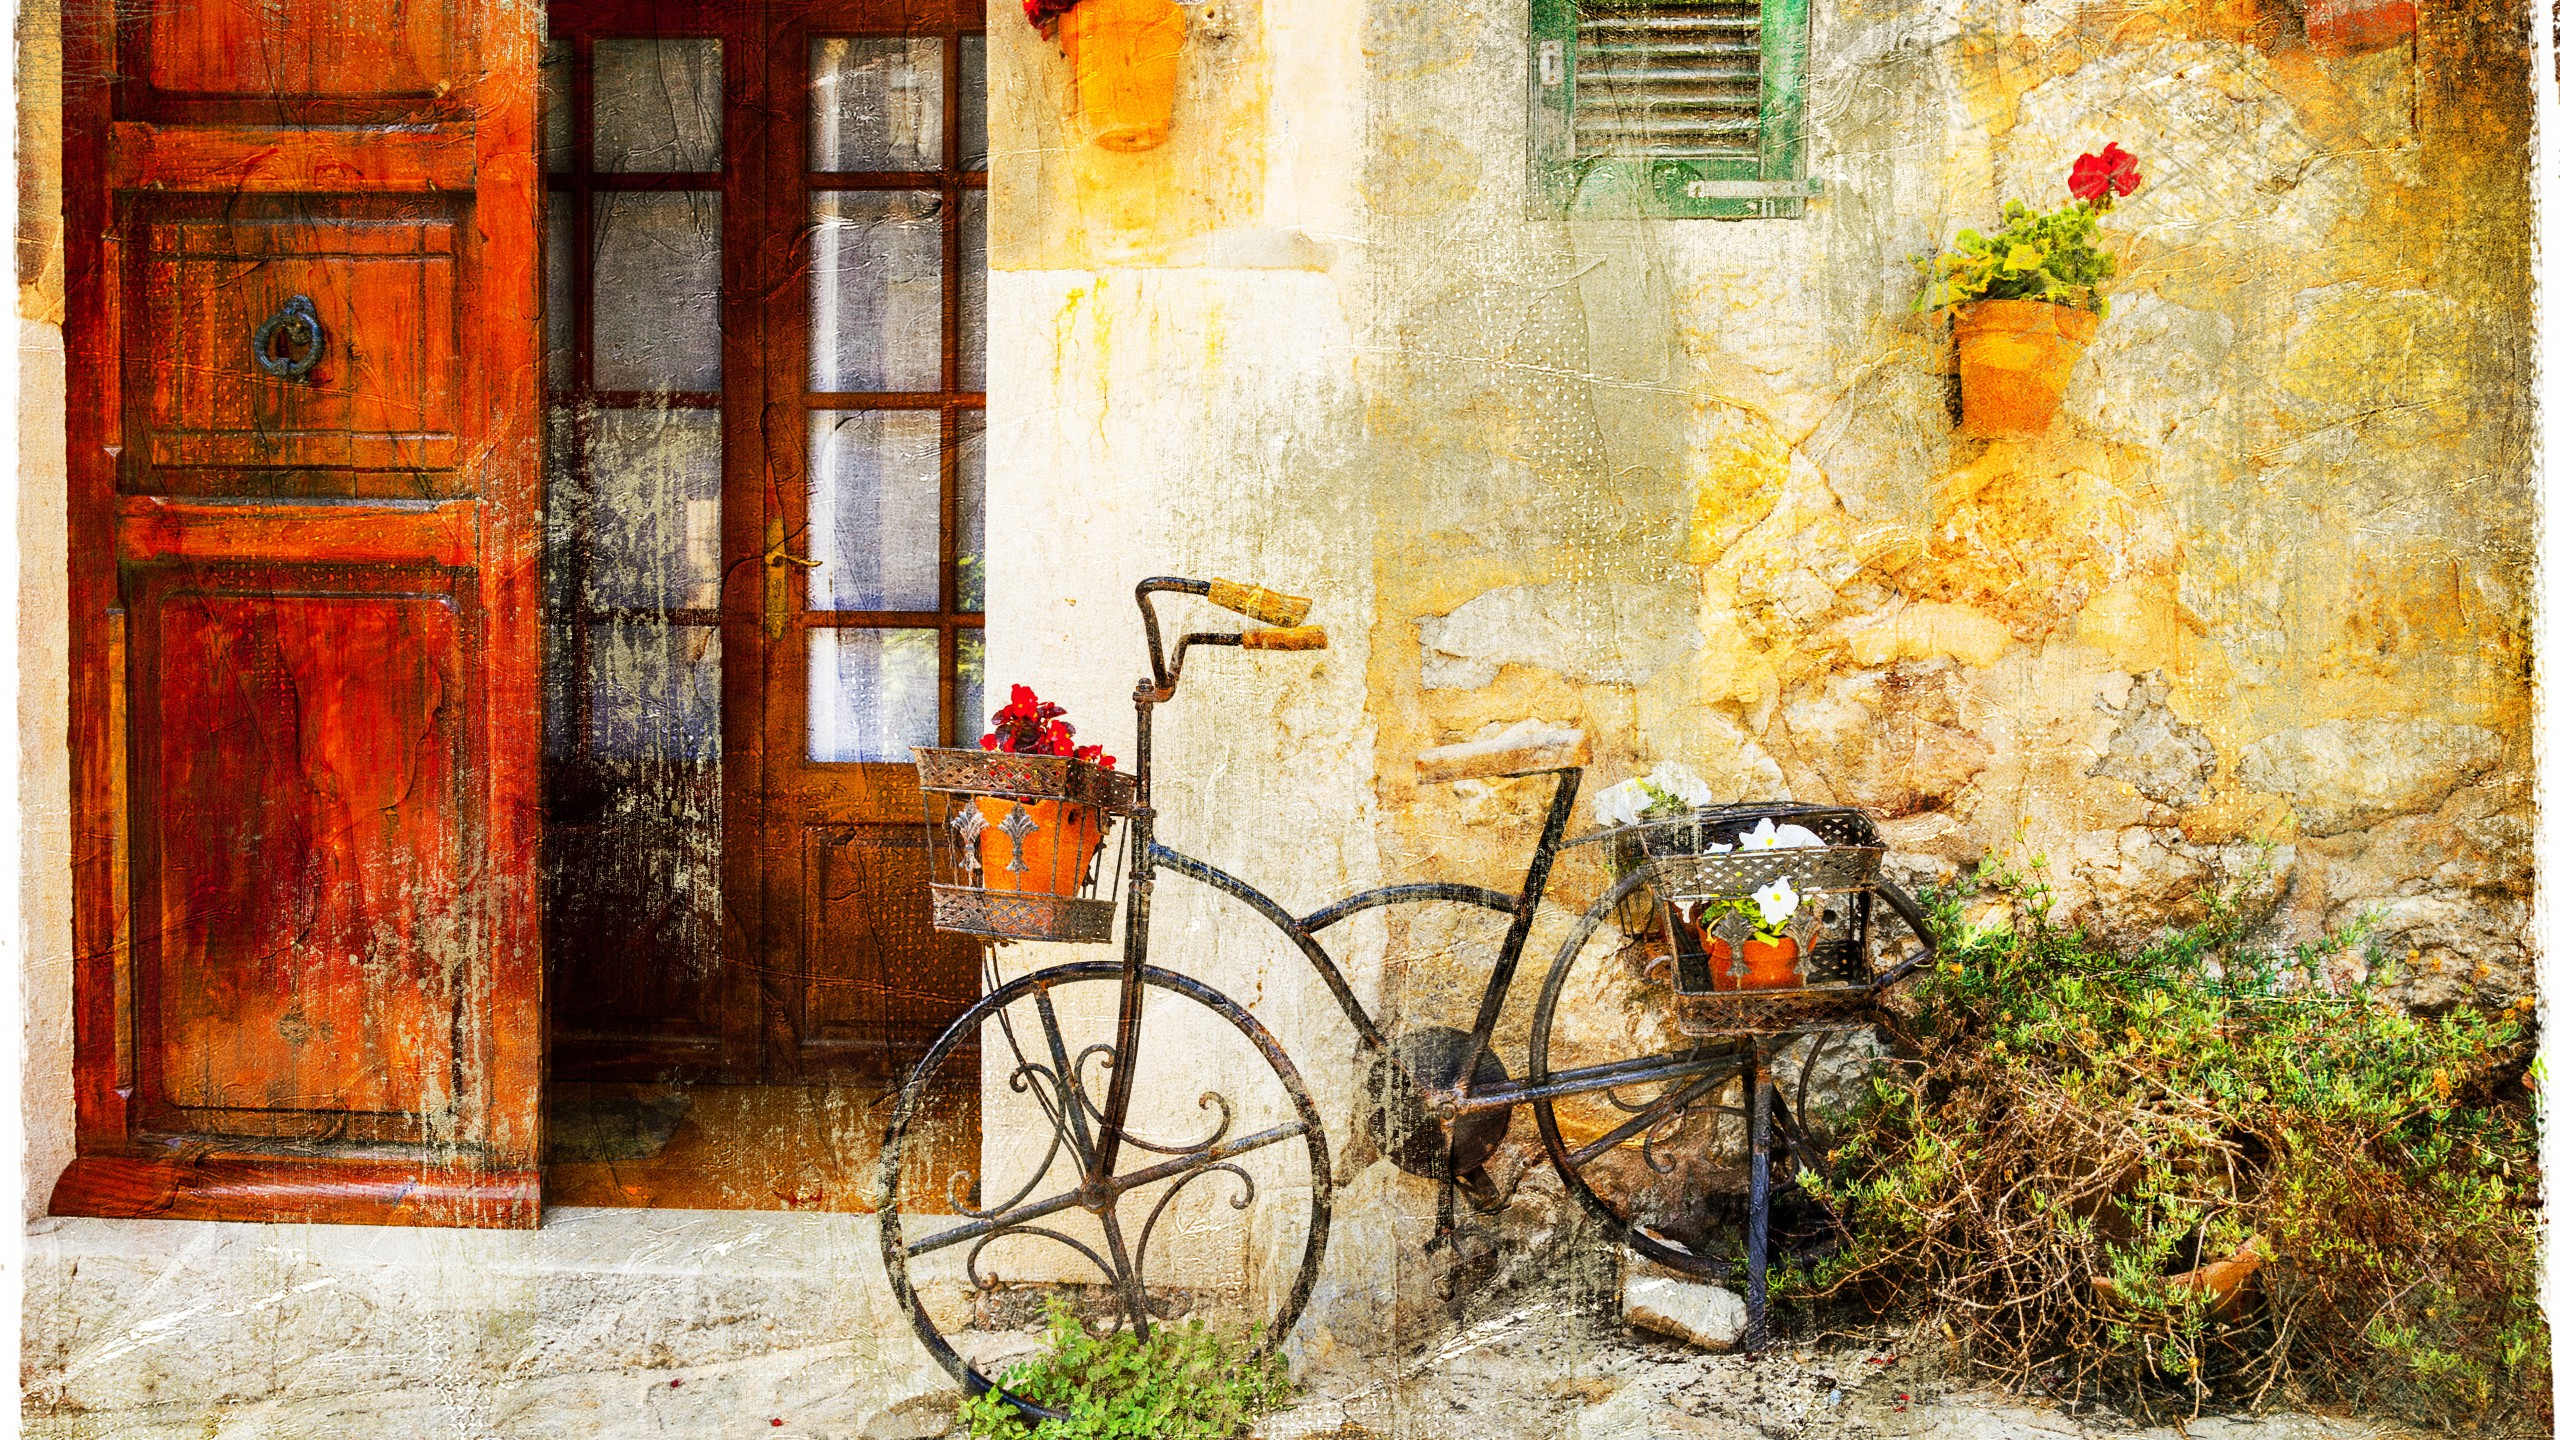 Wallpaper Bicycle Vintage Old House 8k Art 18730